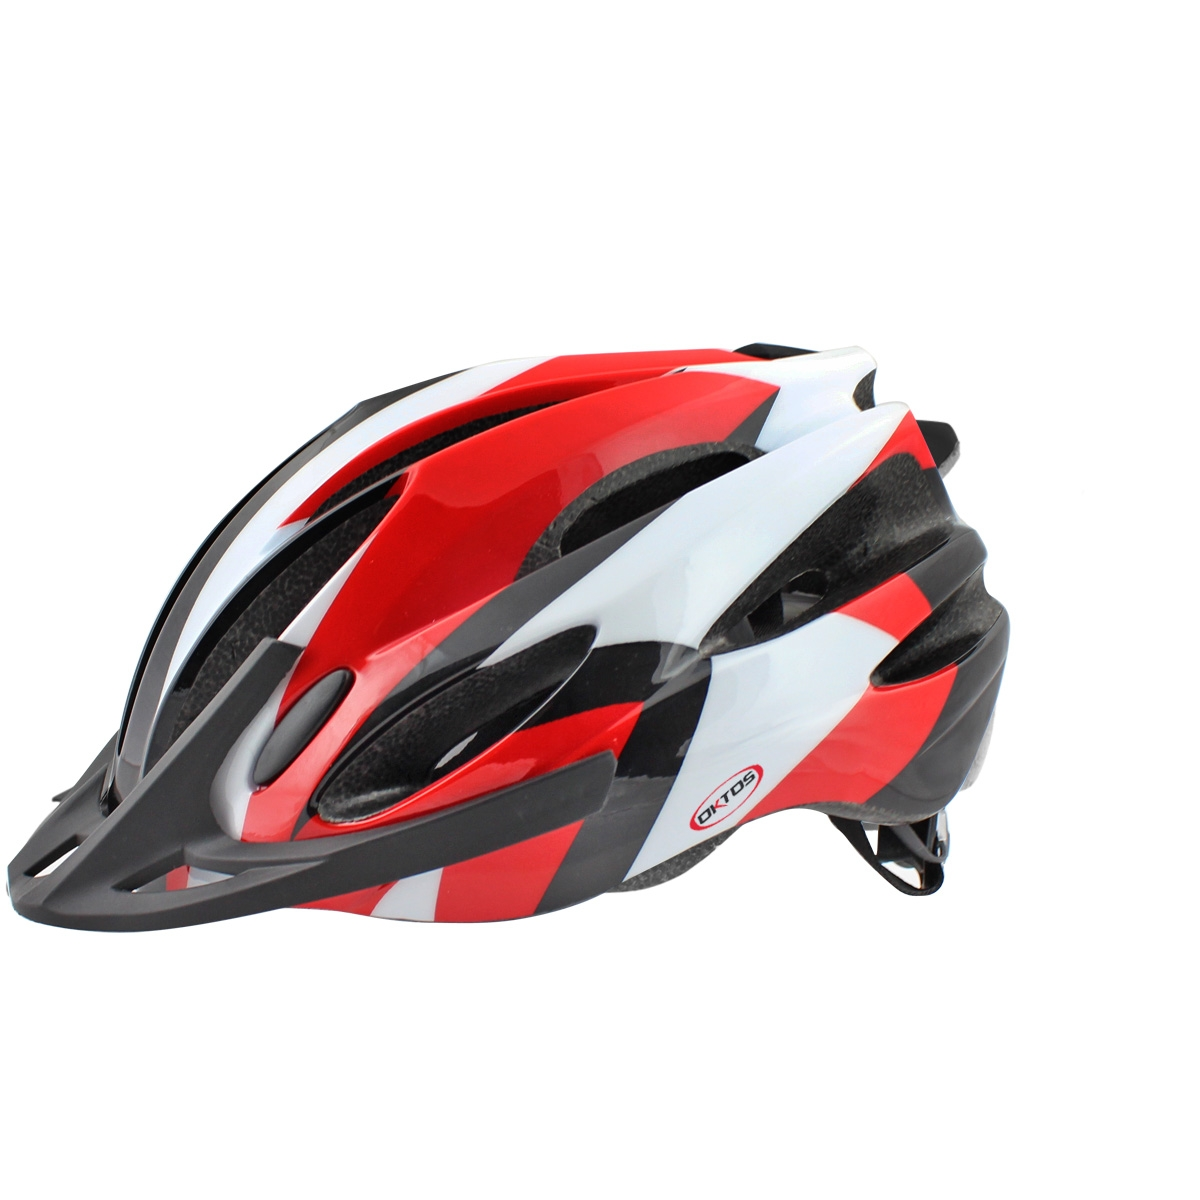 Casque vélo Oktos Adulte Rouge/ Blanc - 58/62